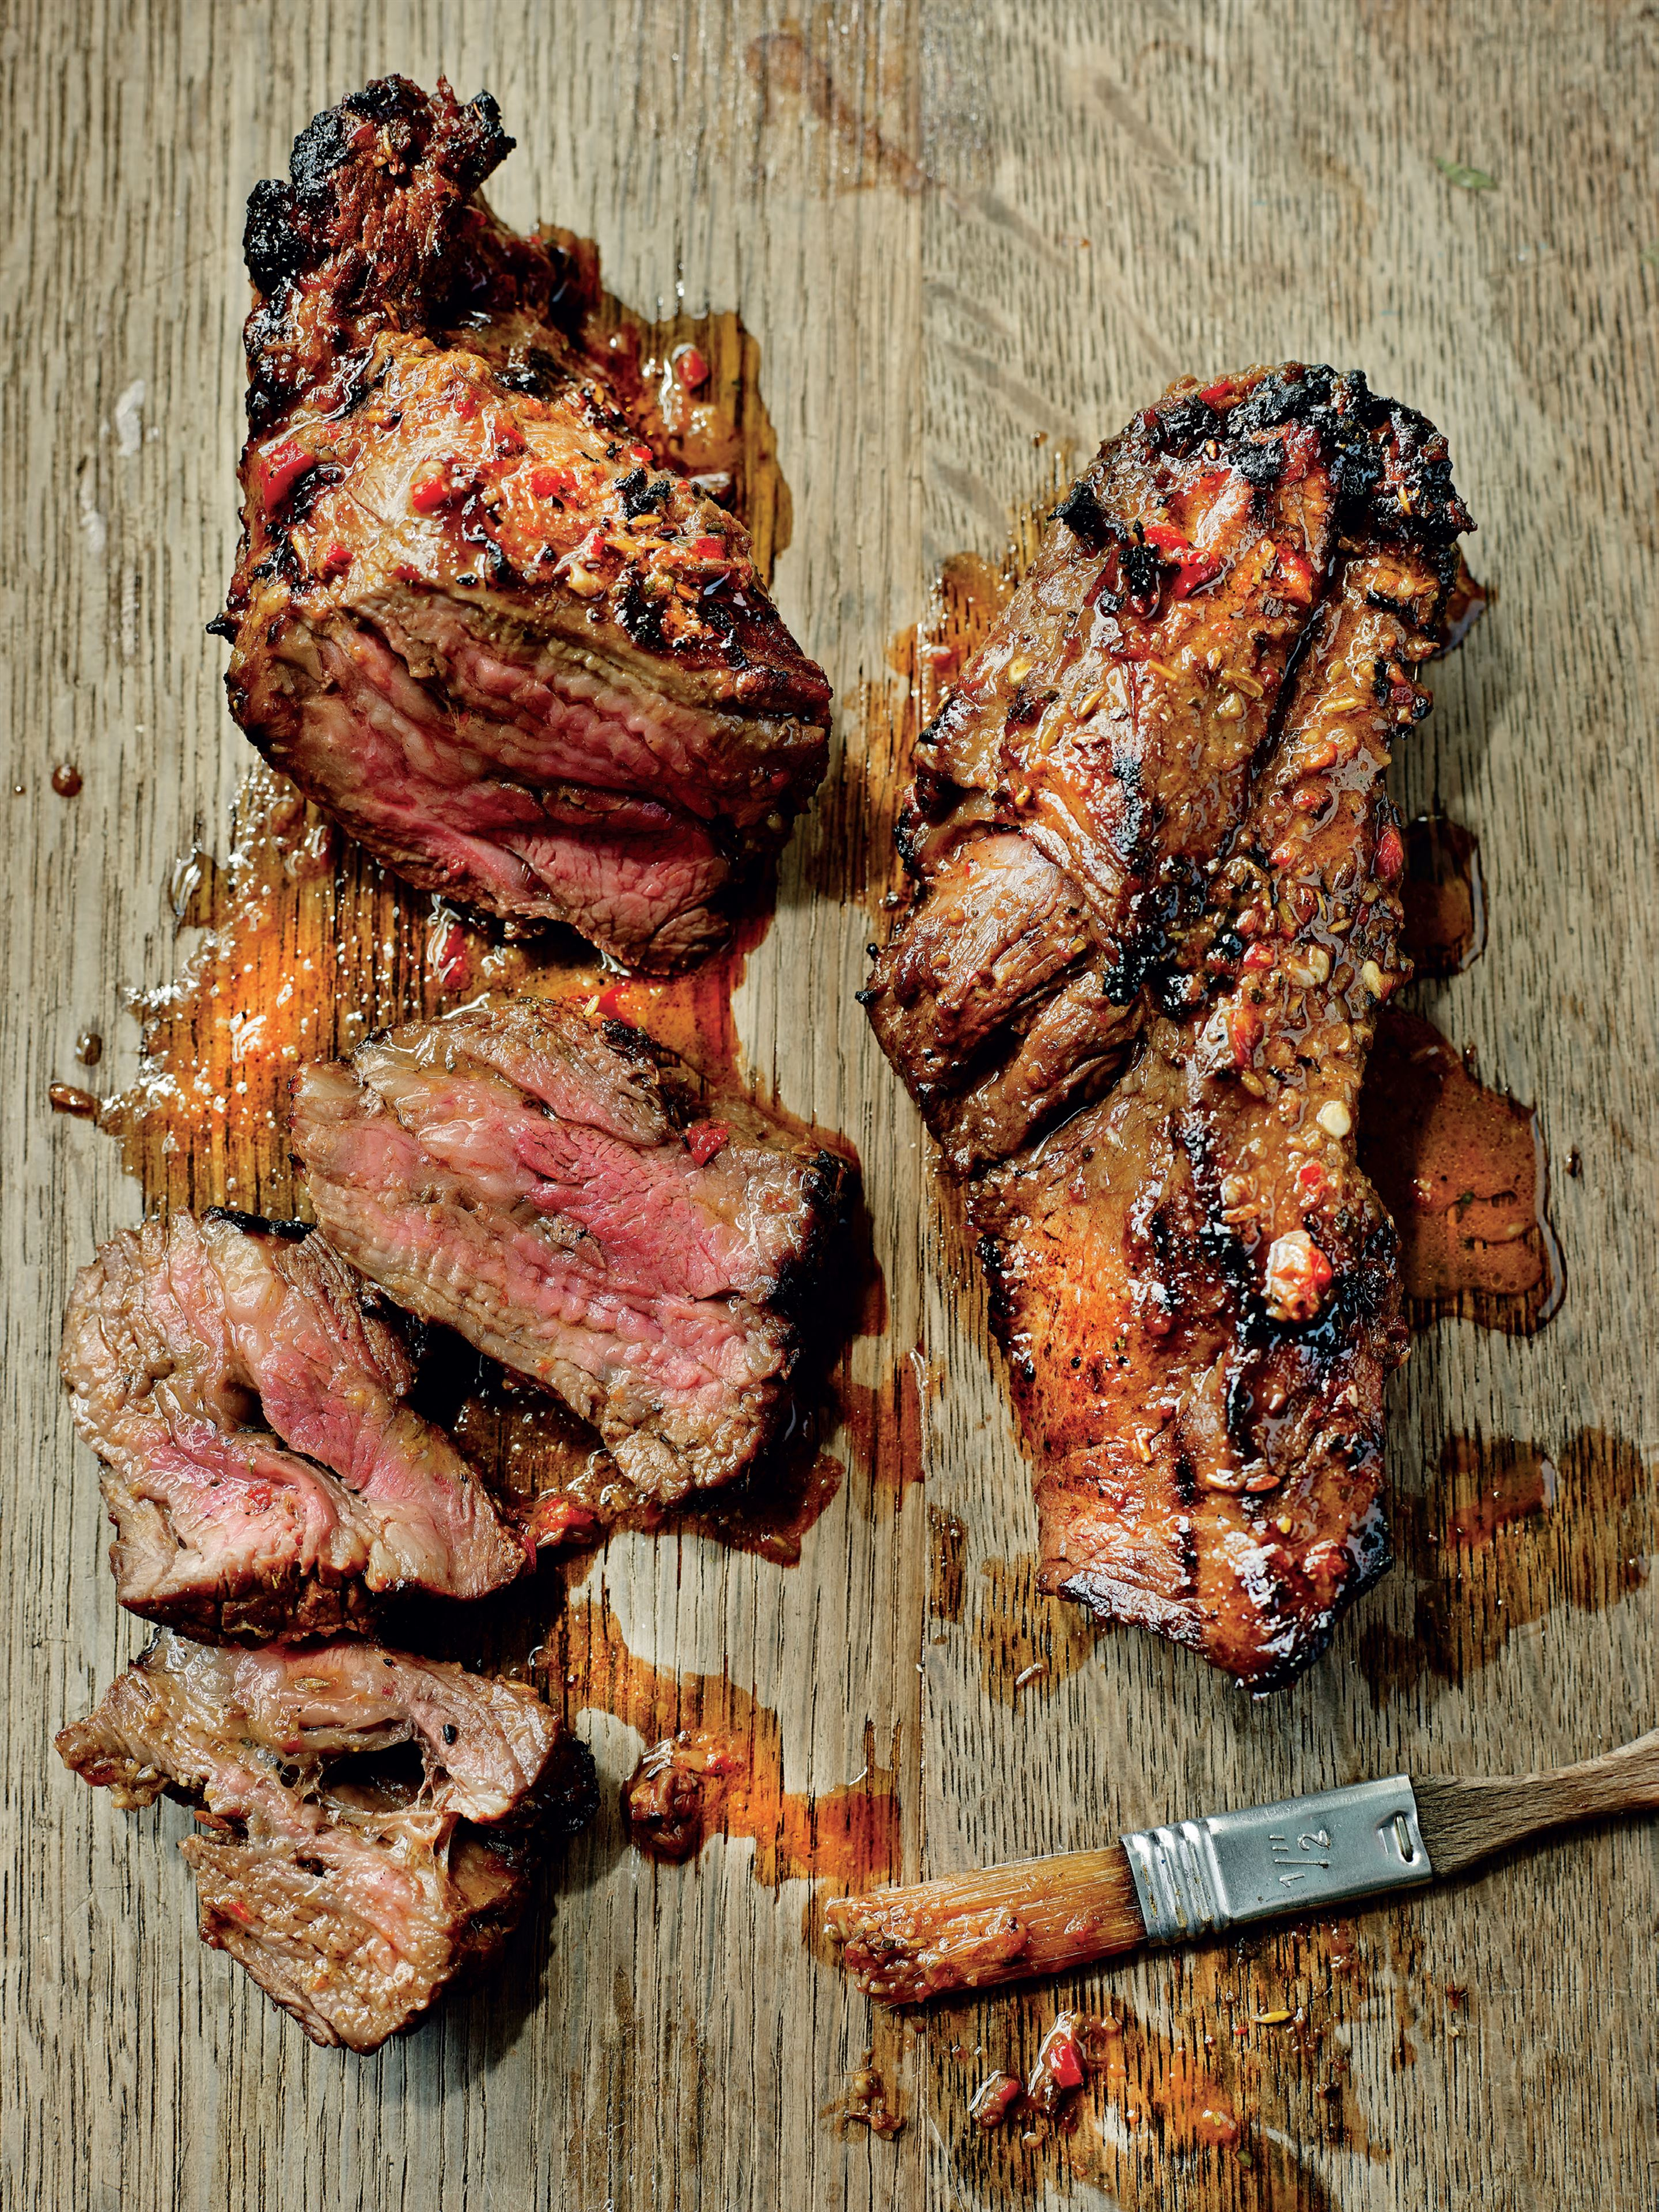 Chilli and cumin marinated hanger steak